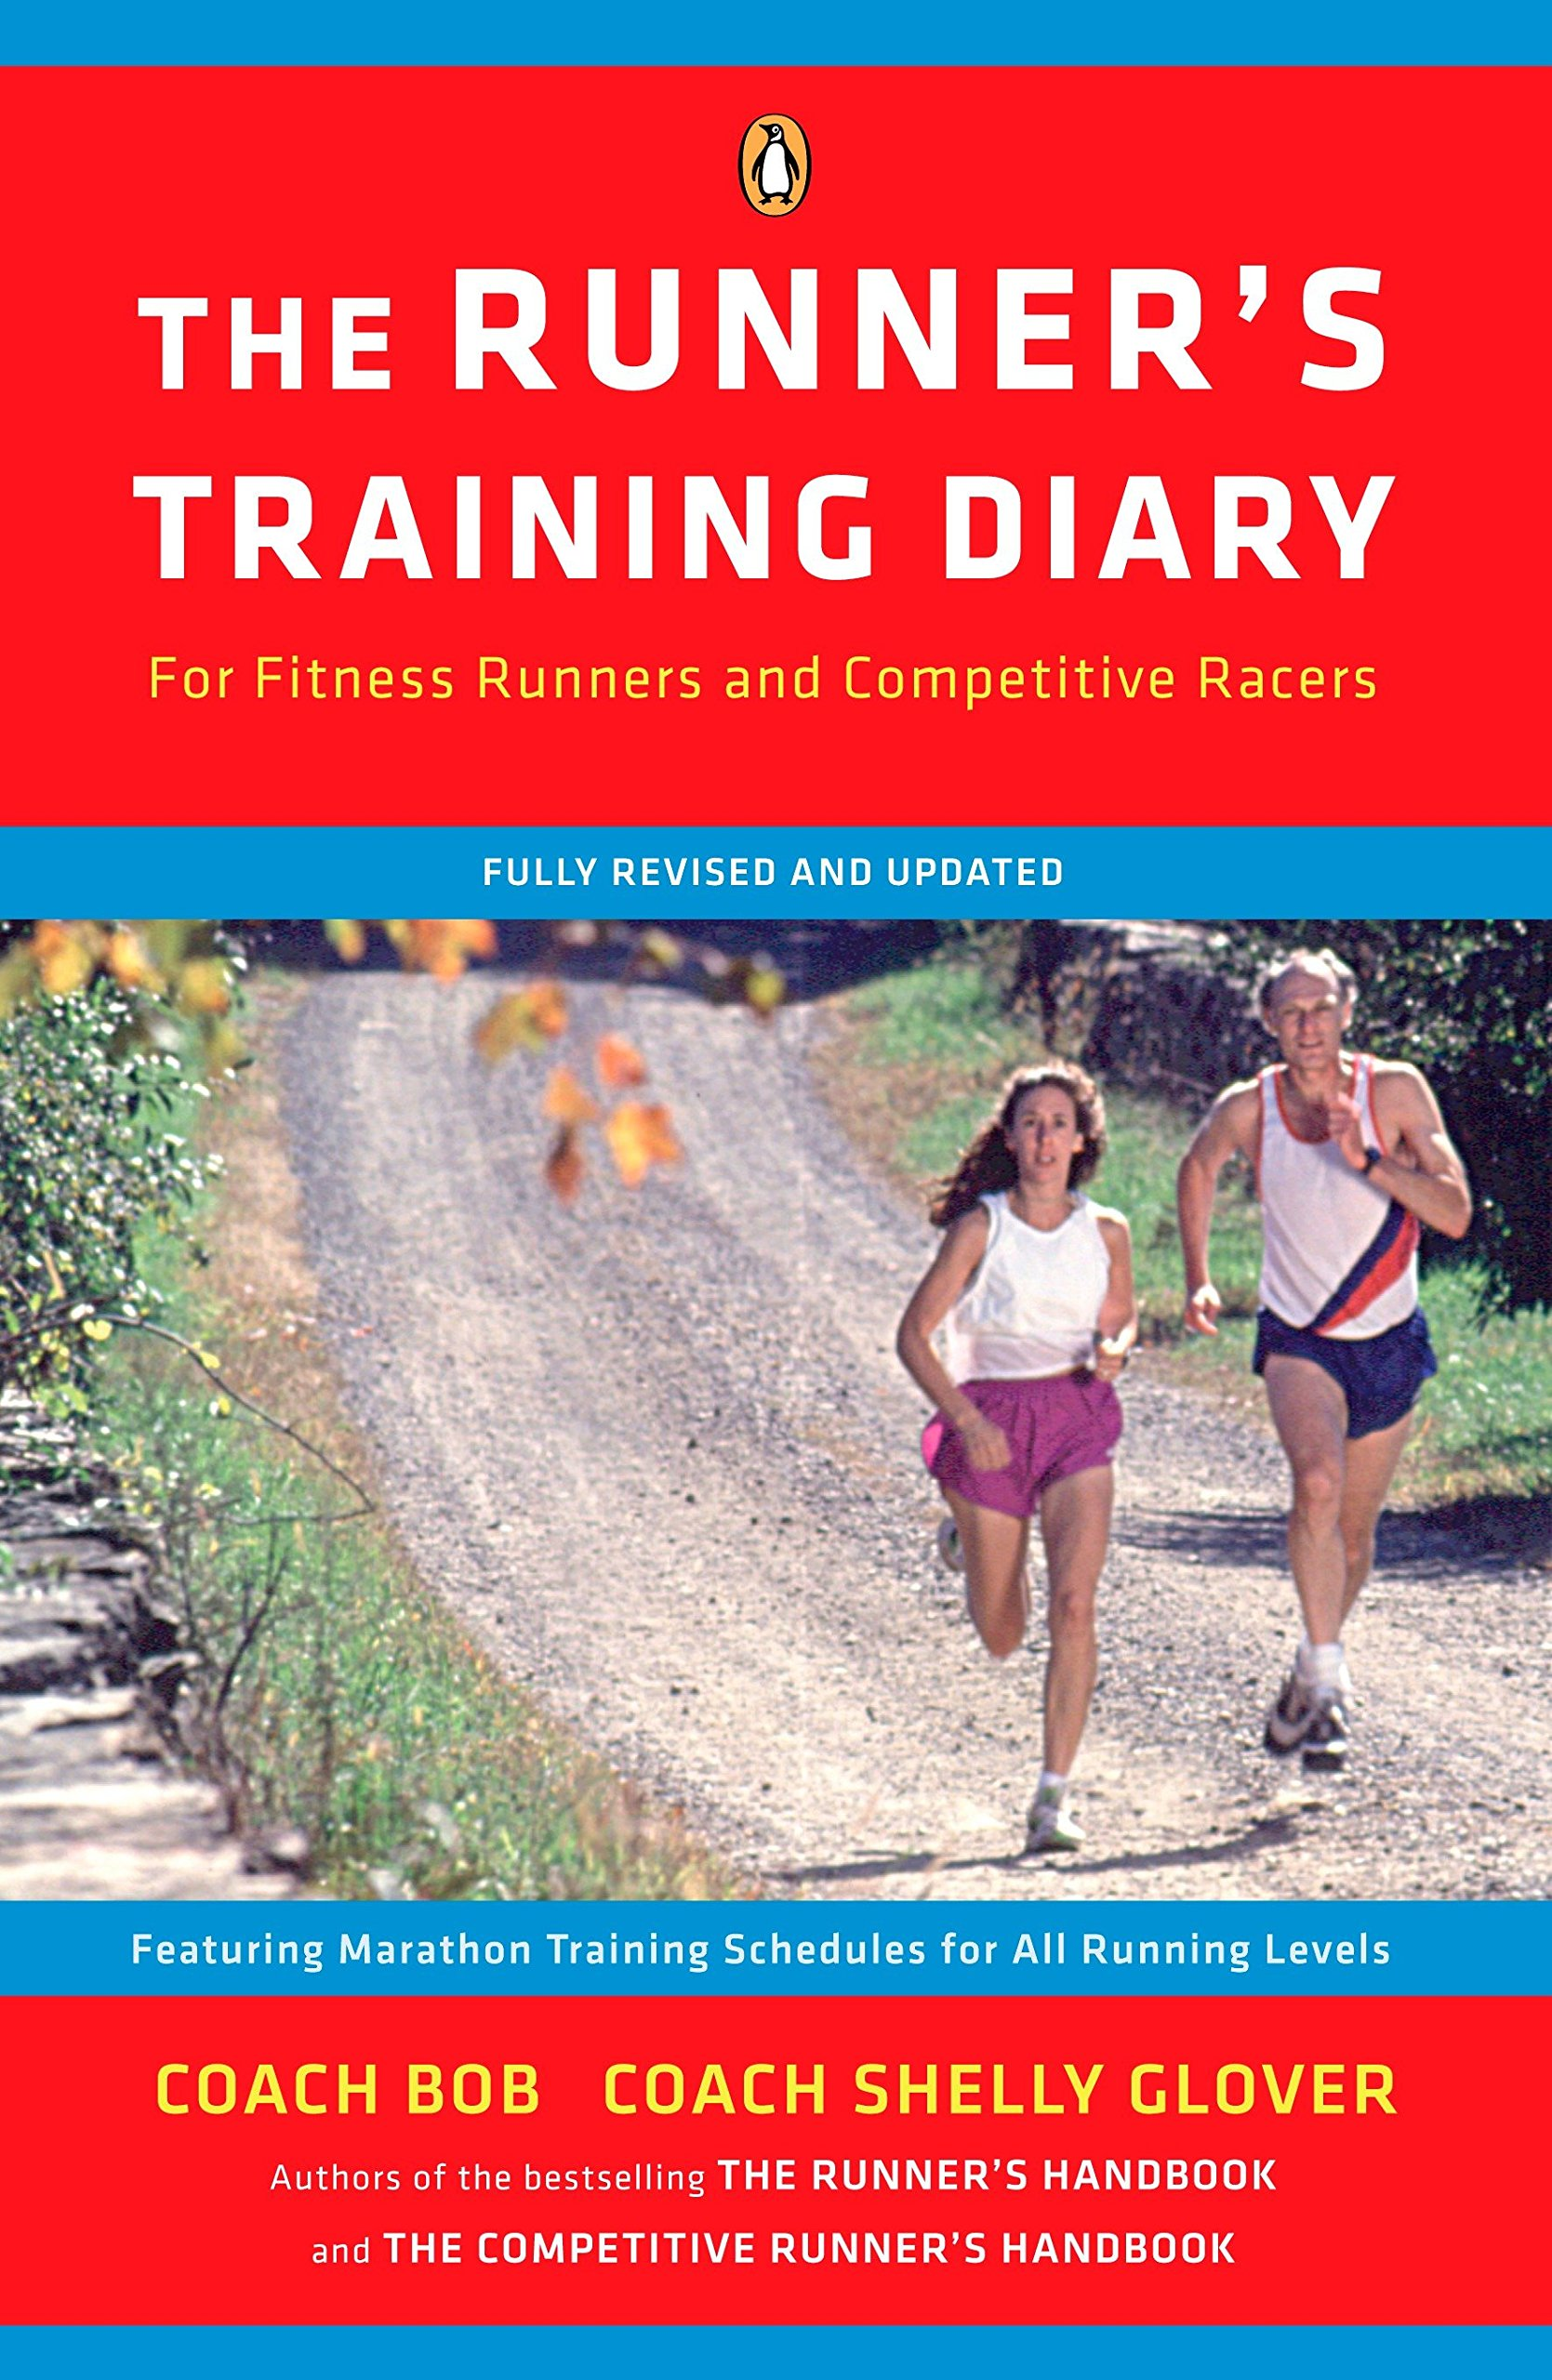 The Runner's Training Diary: For Fitness Runners and Competitive Racers PDF